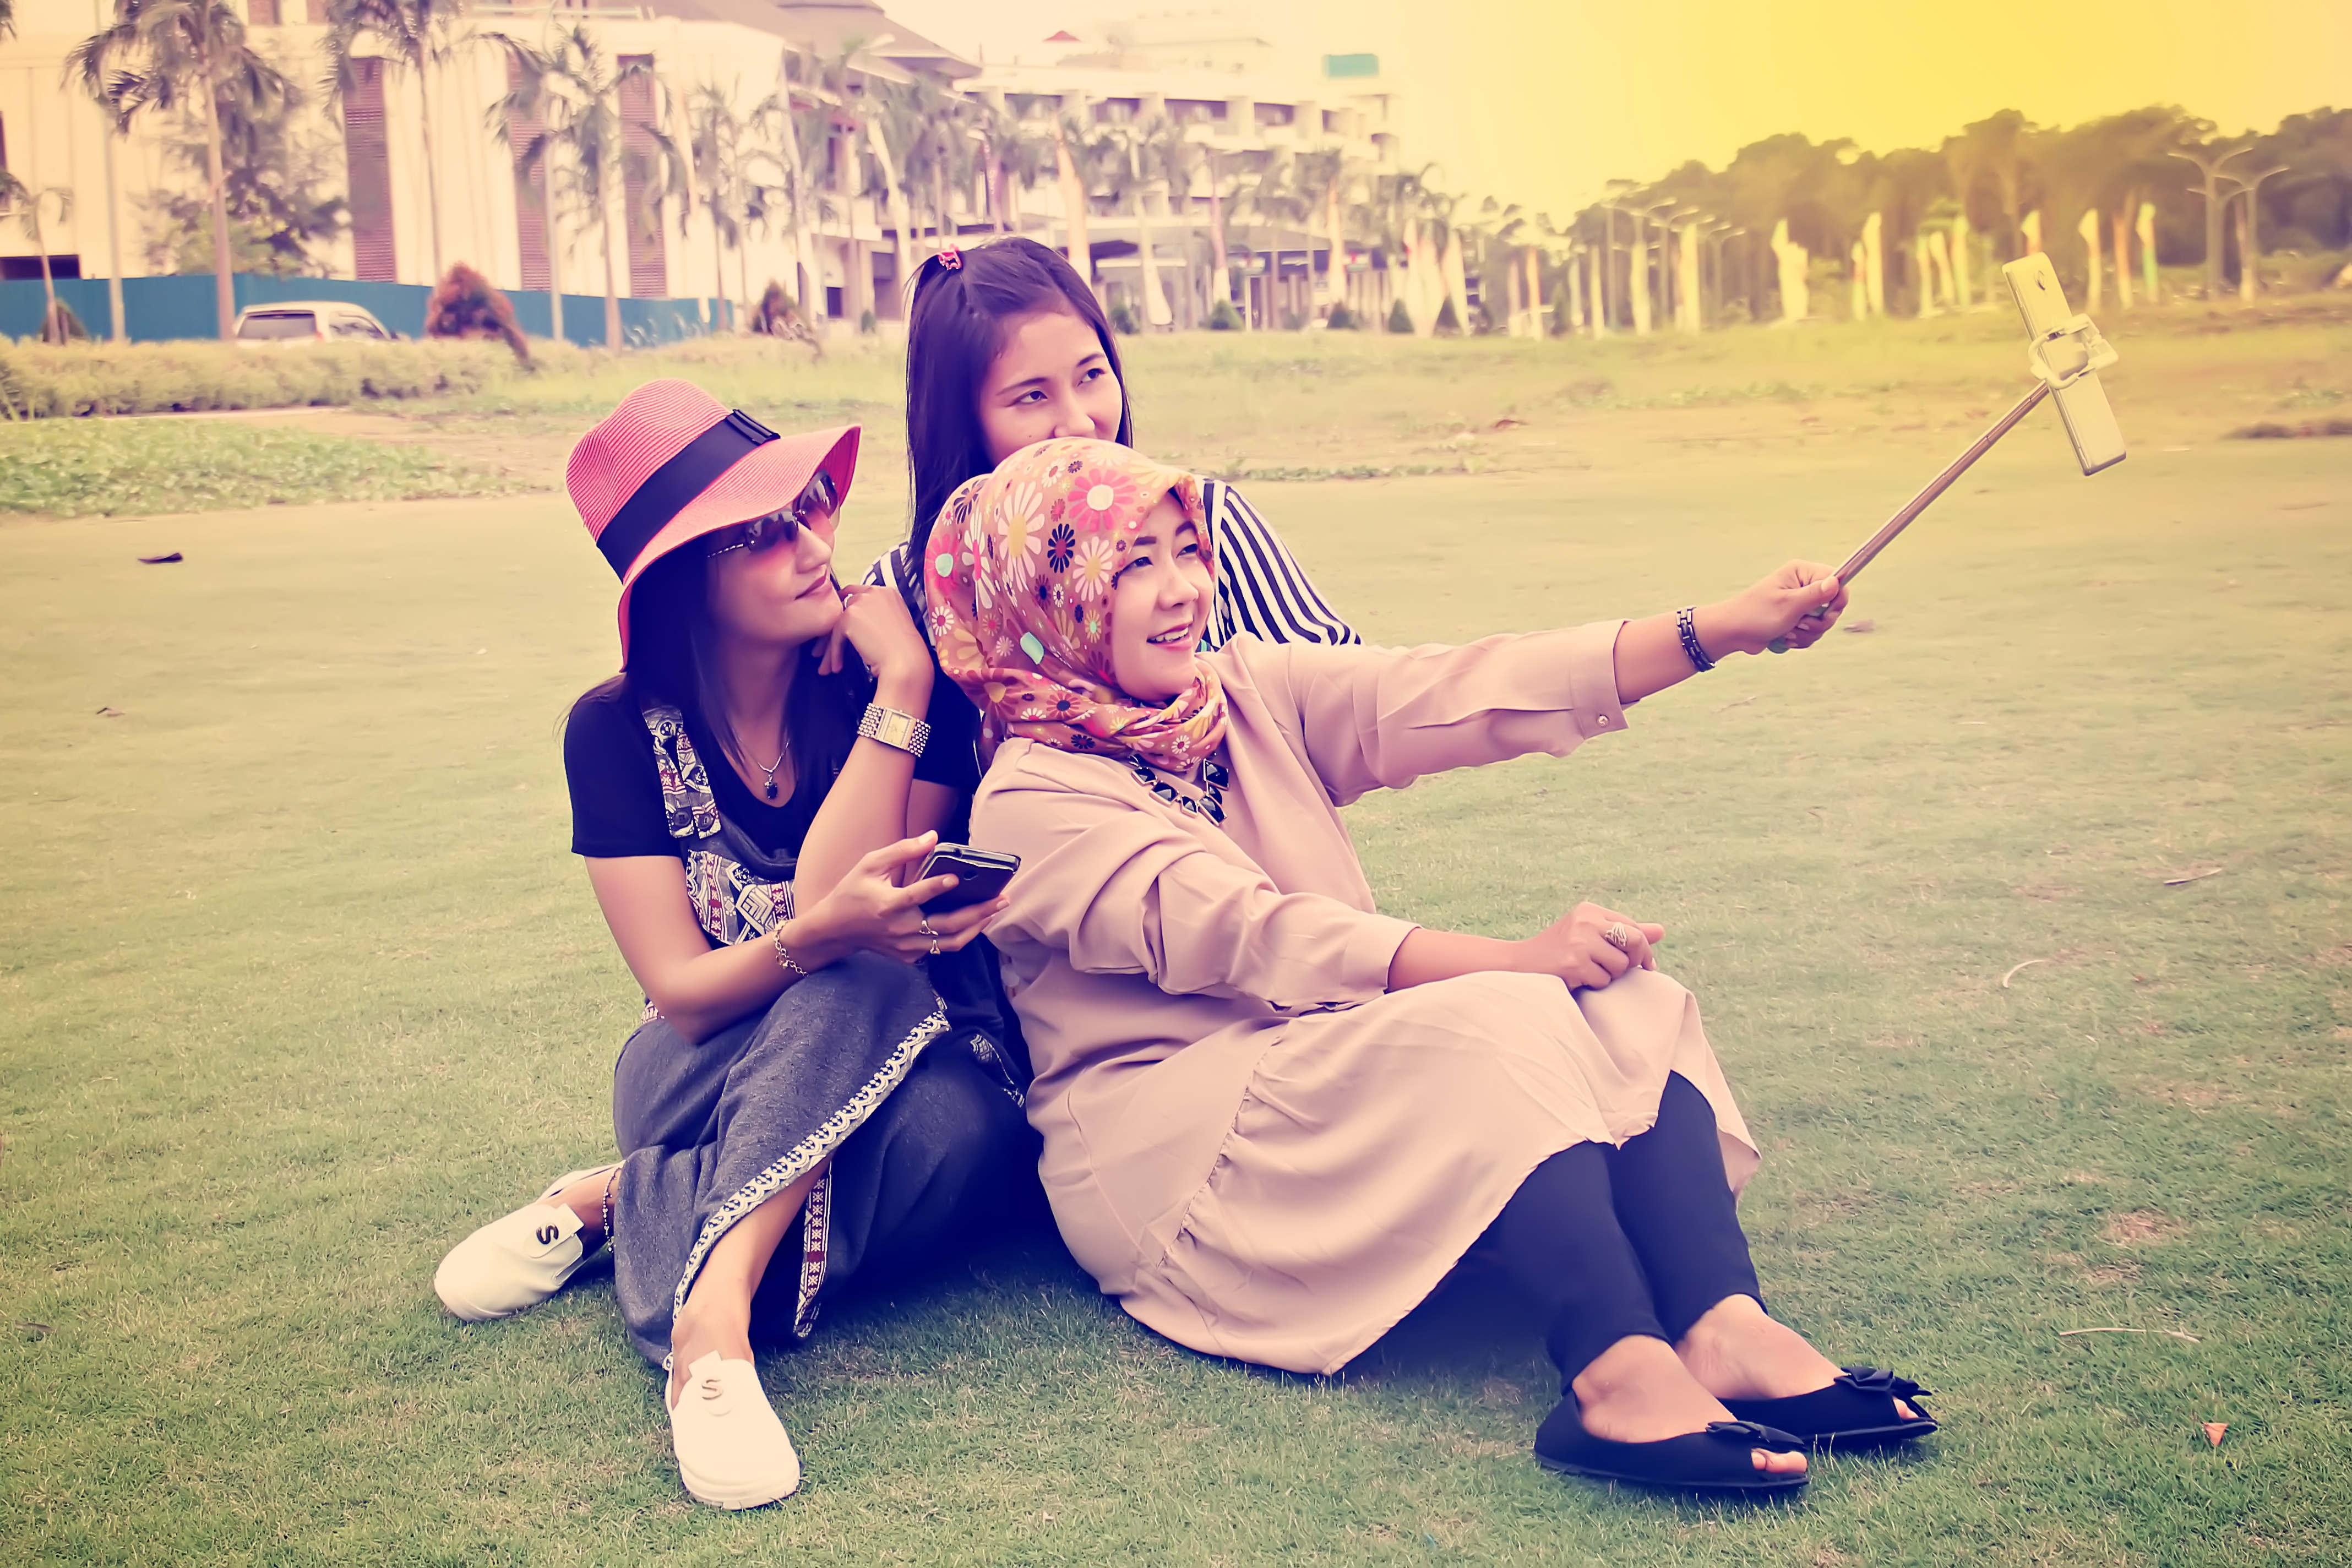 Sister Selfie, Fun, Girls, Indonesia, Mobile, HQ Photo